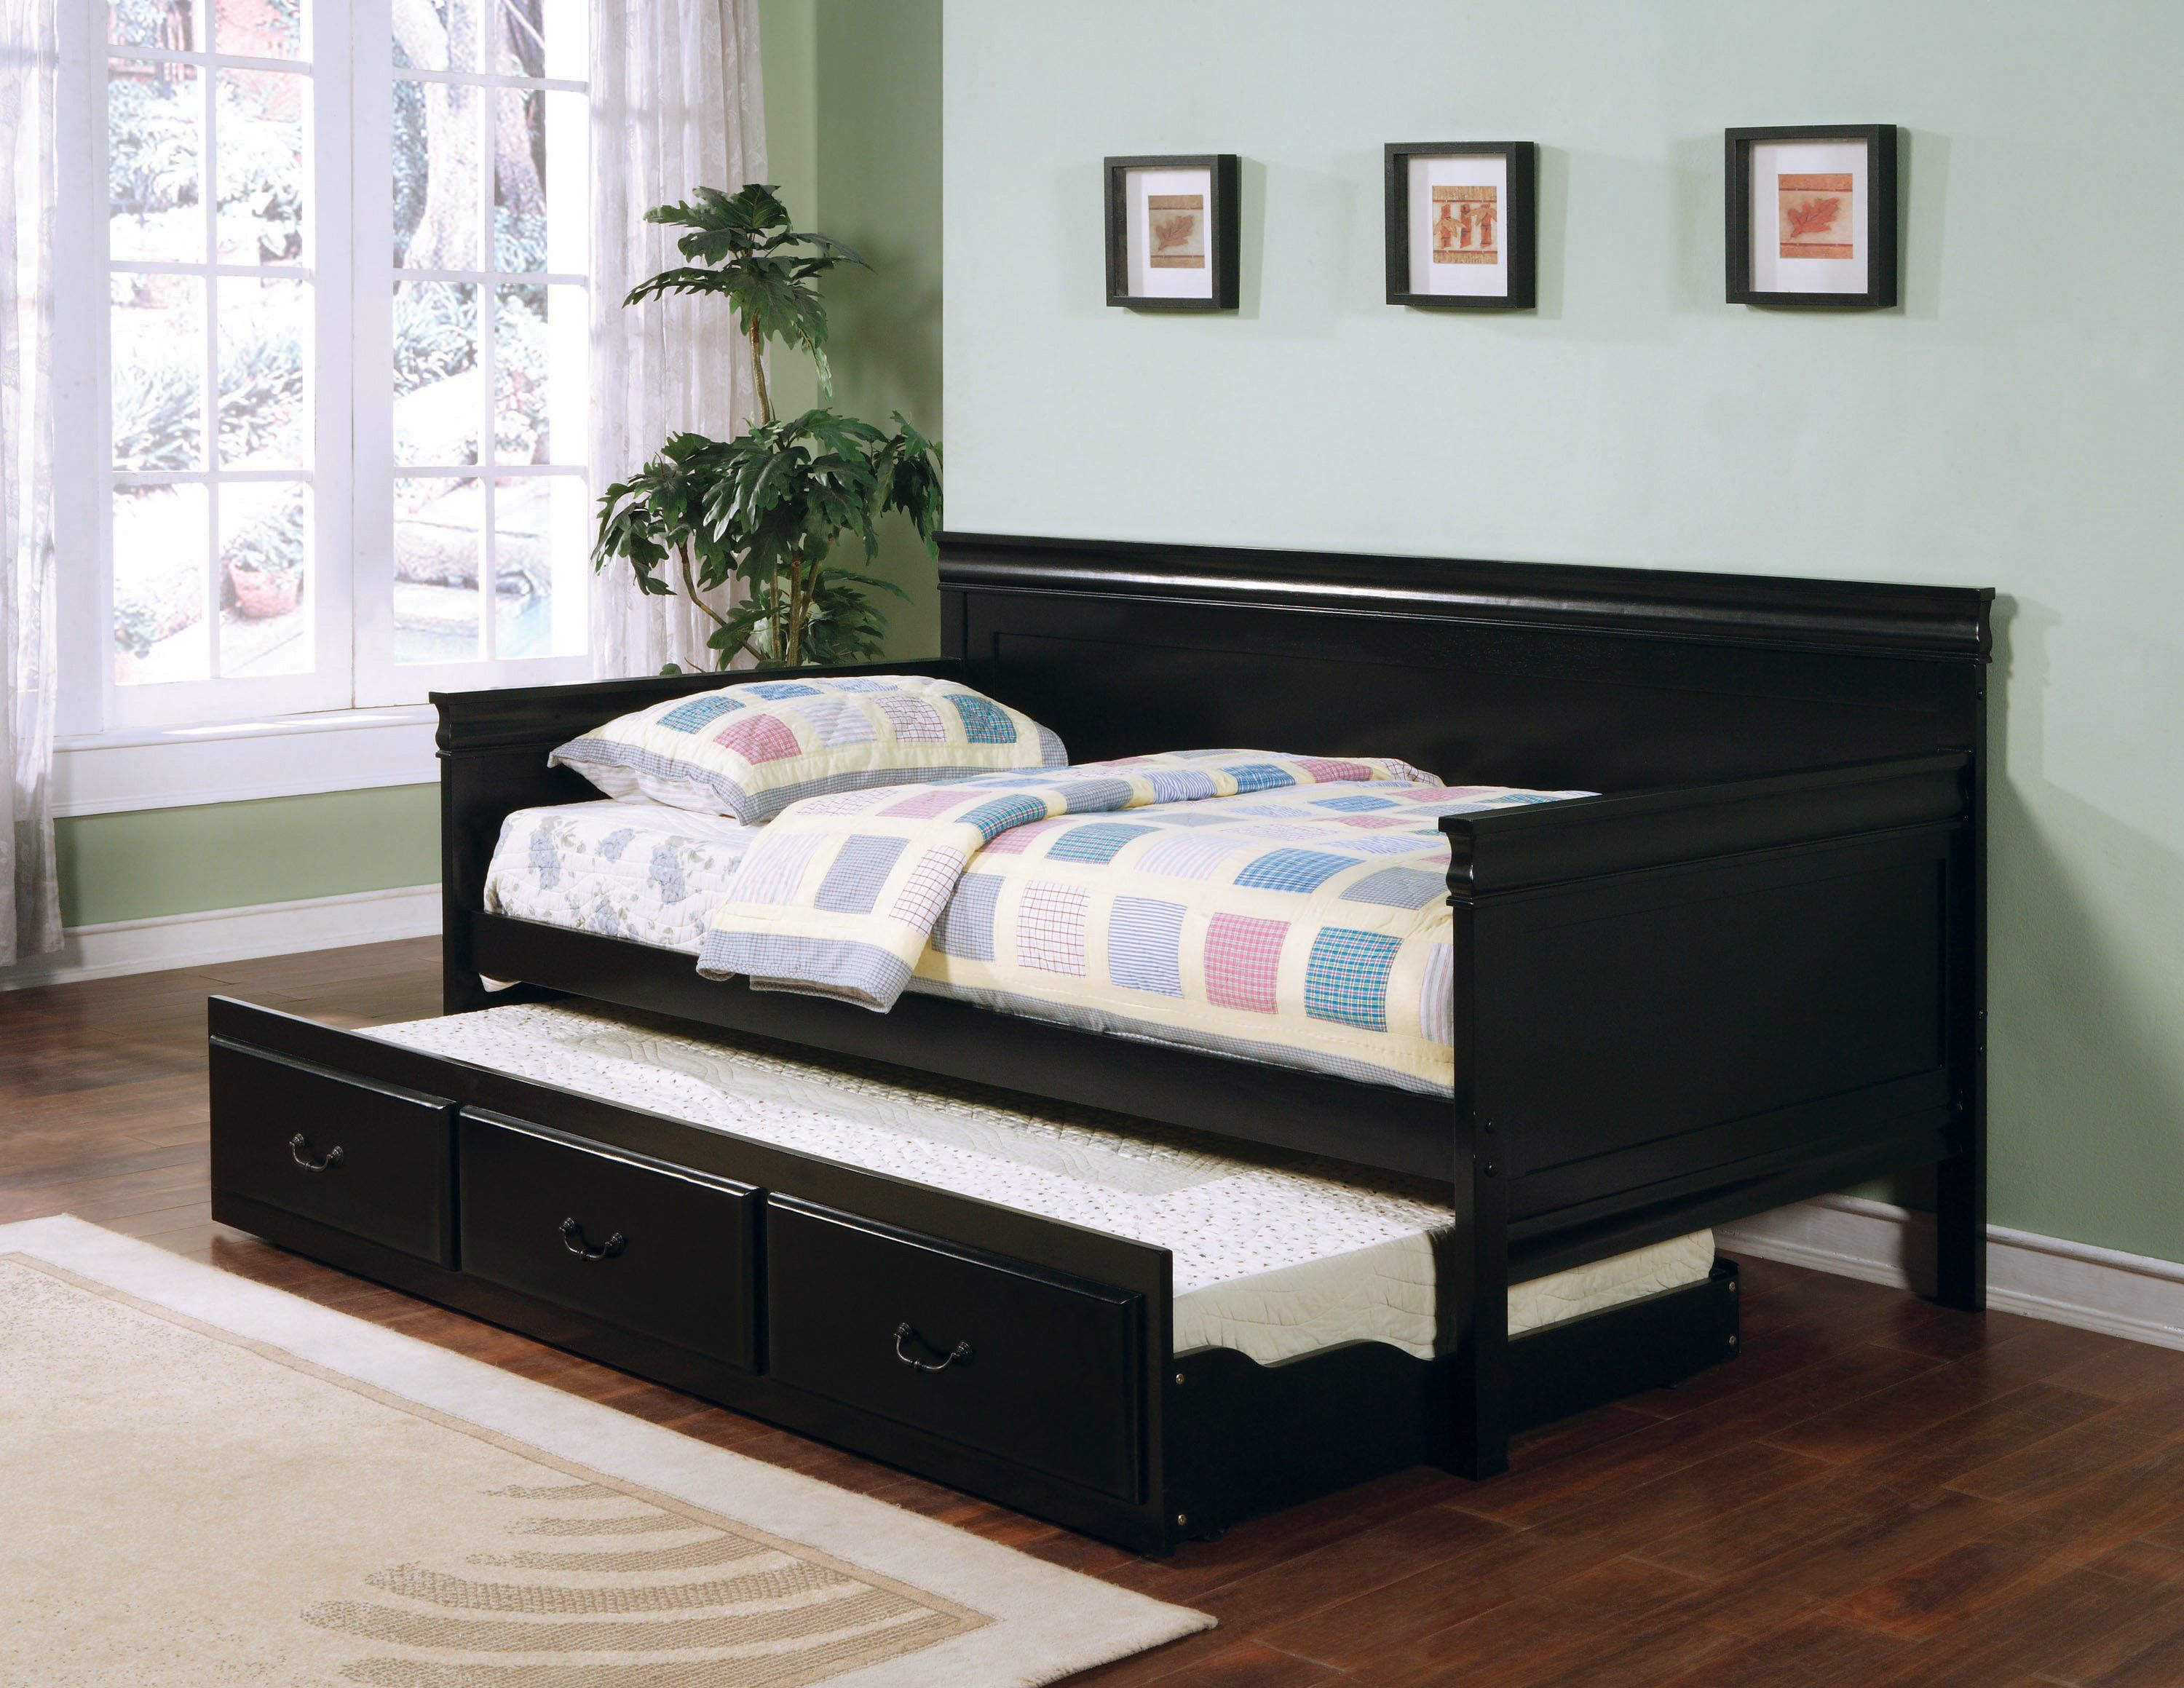 Daybed With Trundle In 2021 Daybed With Trundle Twin Daybed With Trundle Bed Furniture What is a daybed with trundle